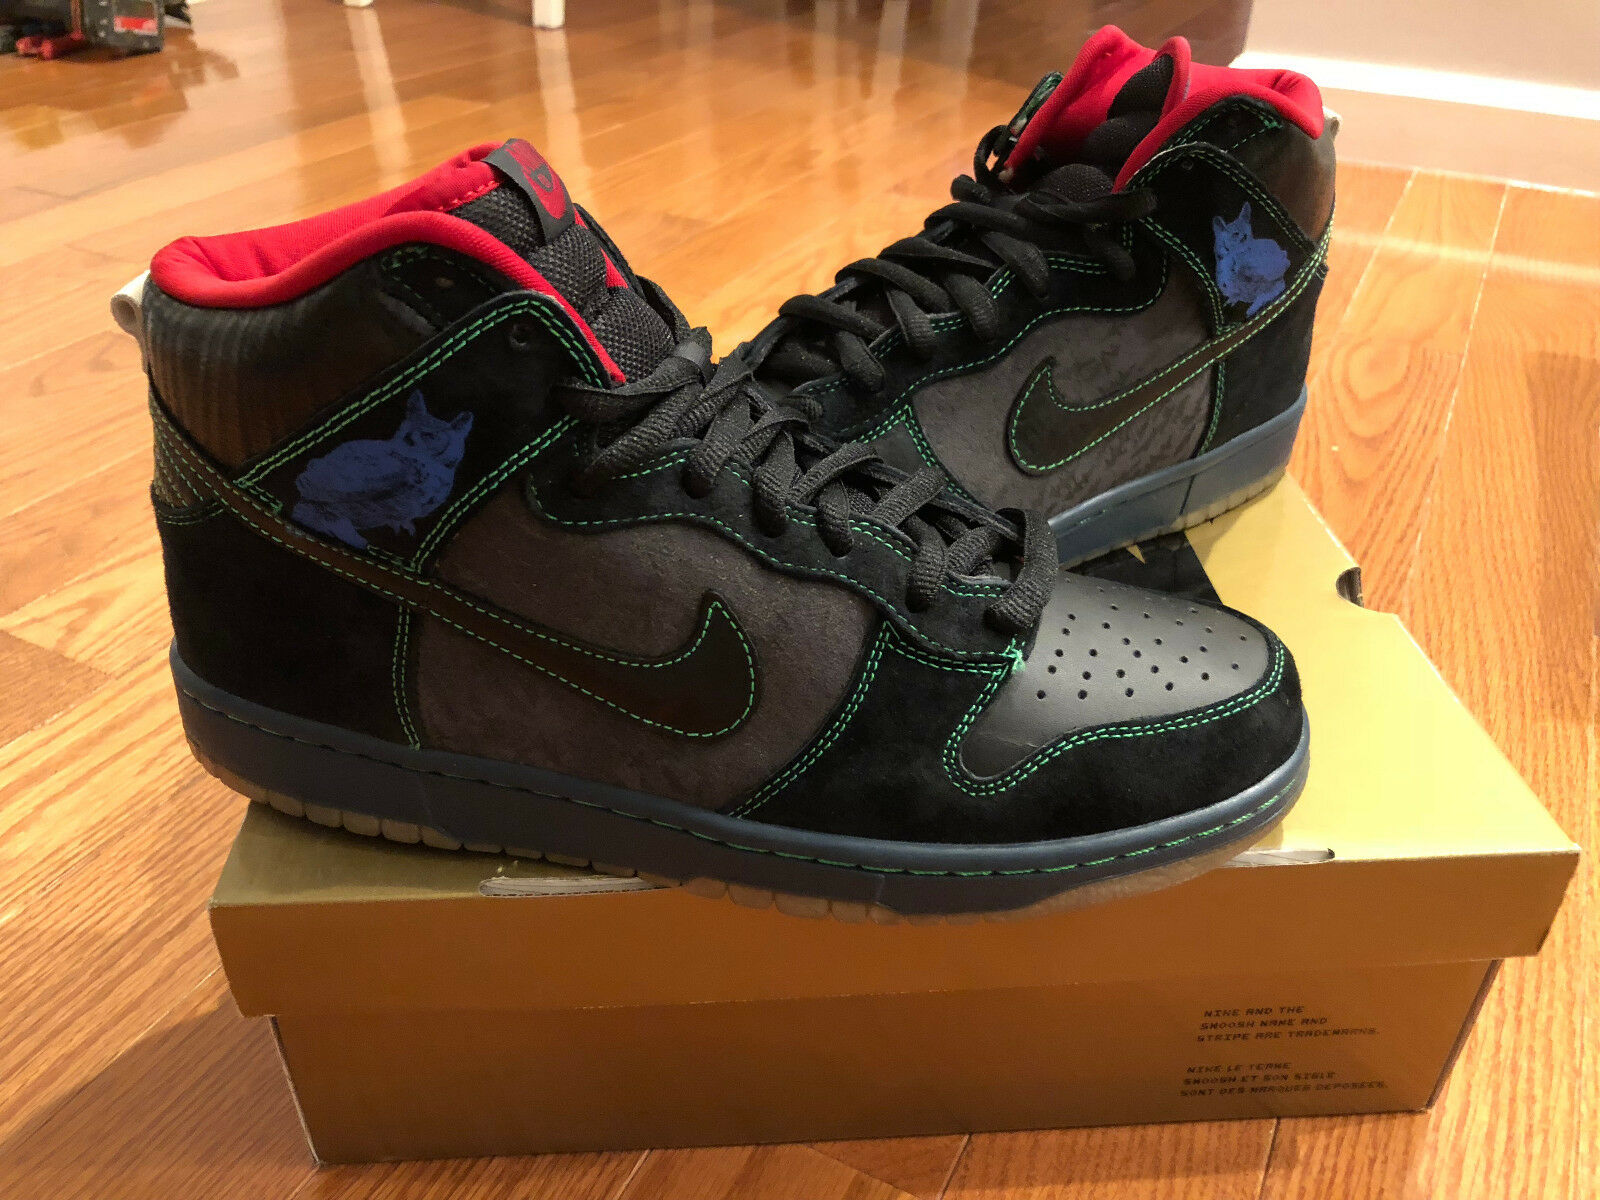 Ds Ds Ds neue 2009 hohe prämie nike dunk sb